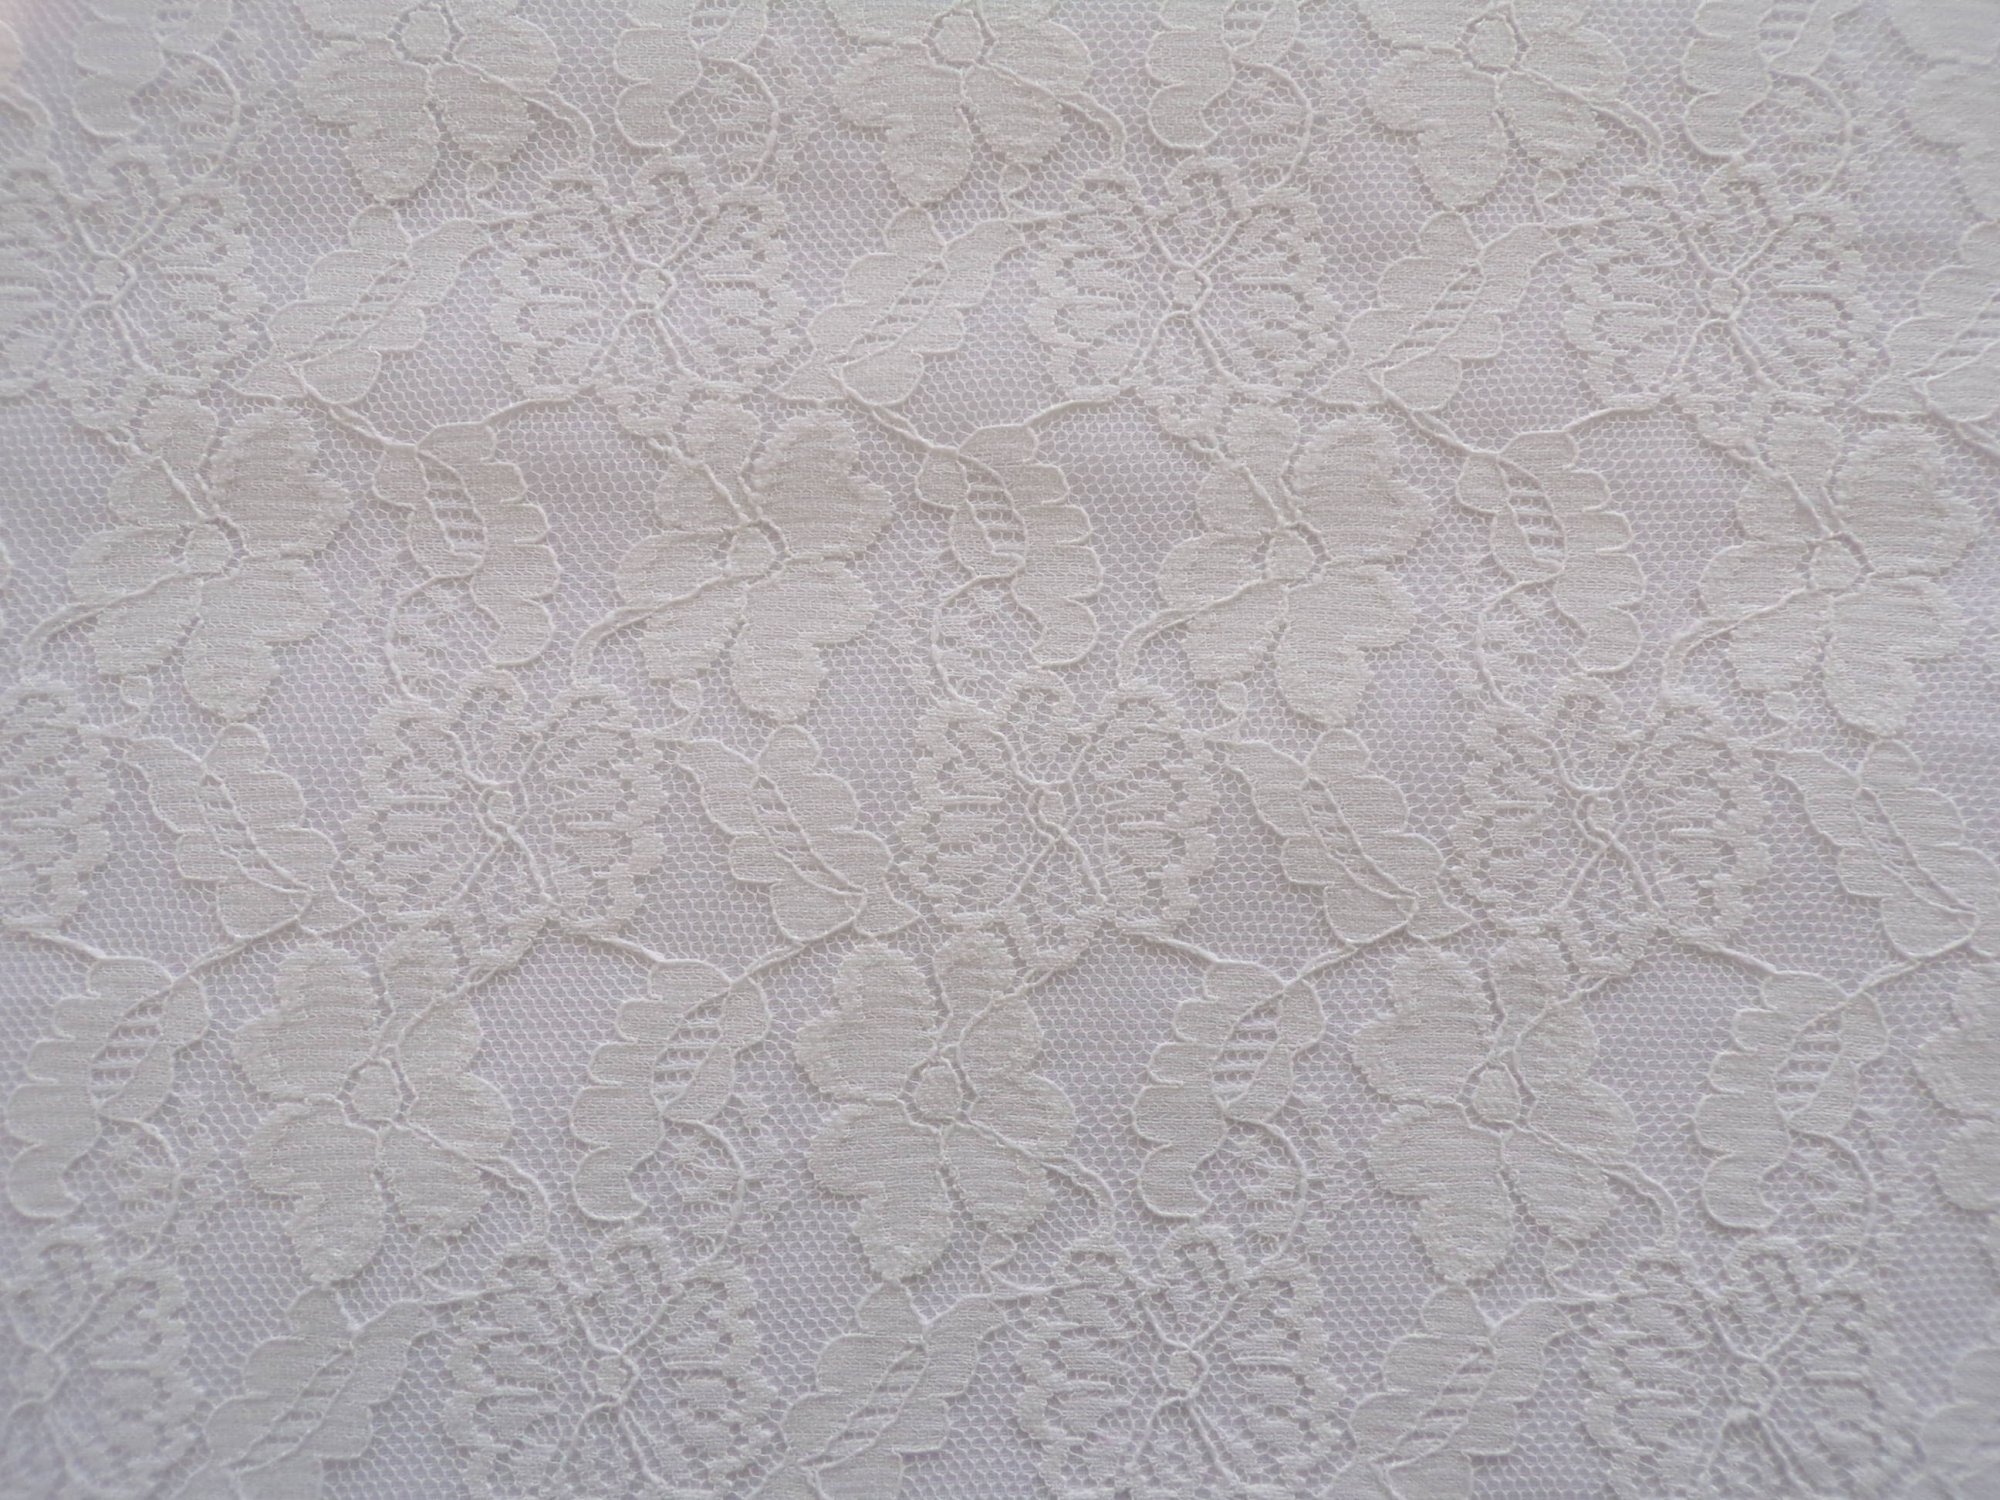 Marquette Lace - Ivory